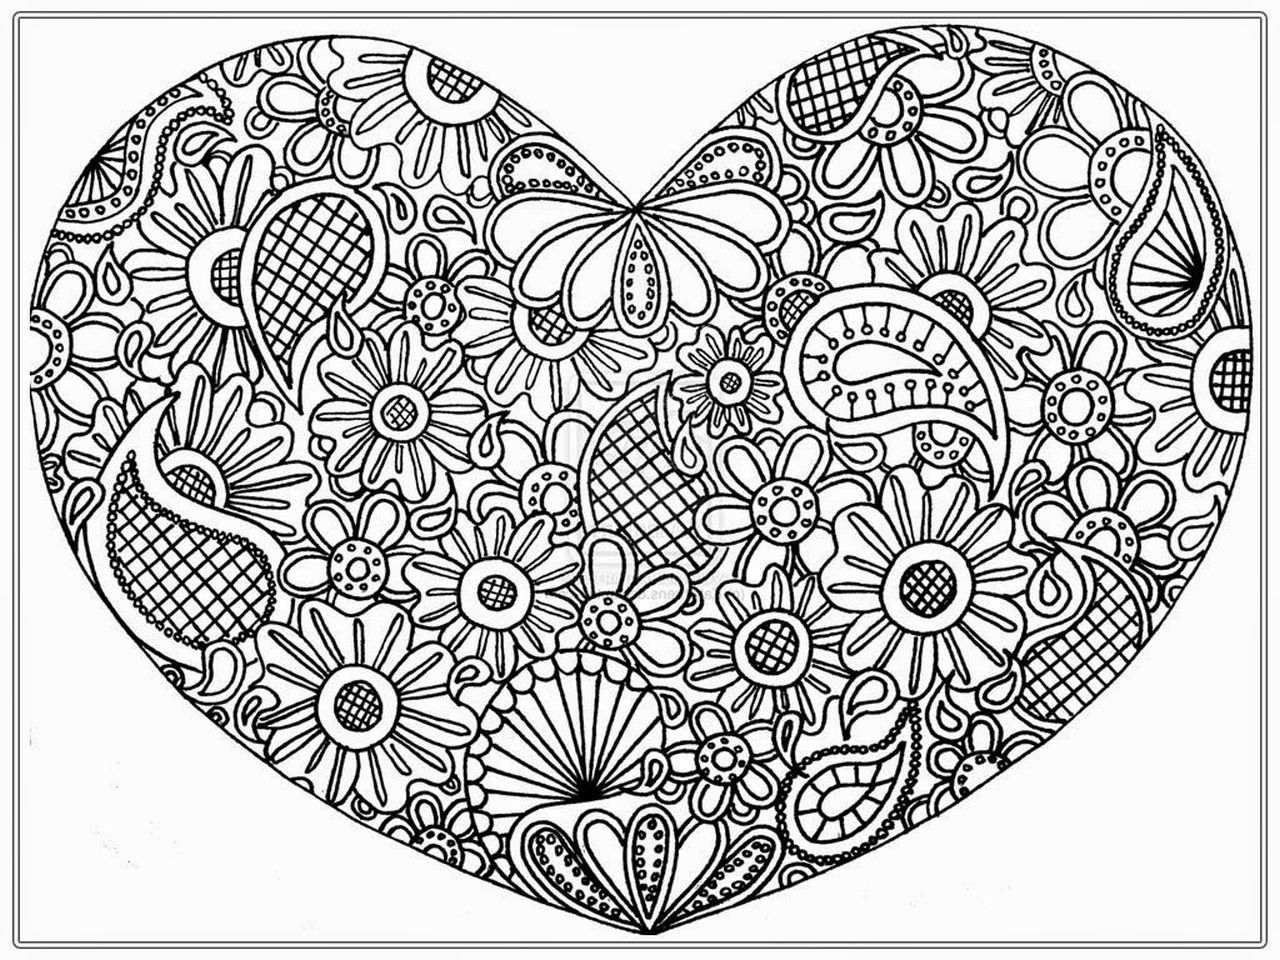 abstract heart coloring pages for adults | Abstract Coloring Pages ...